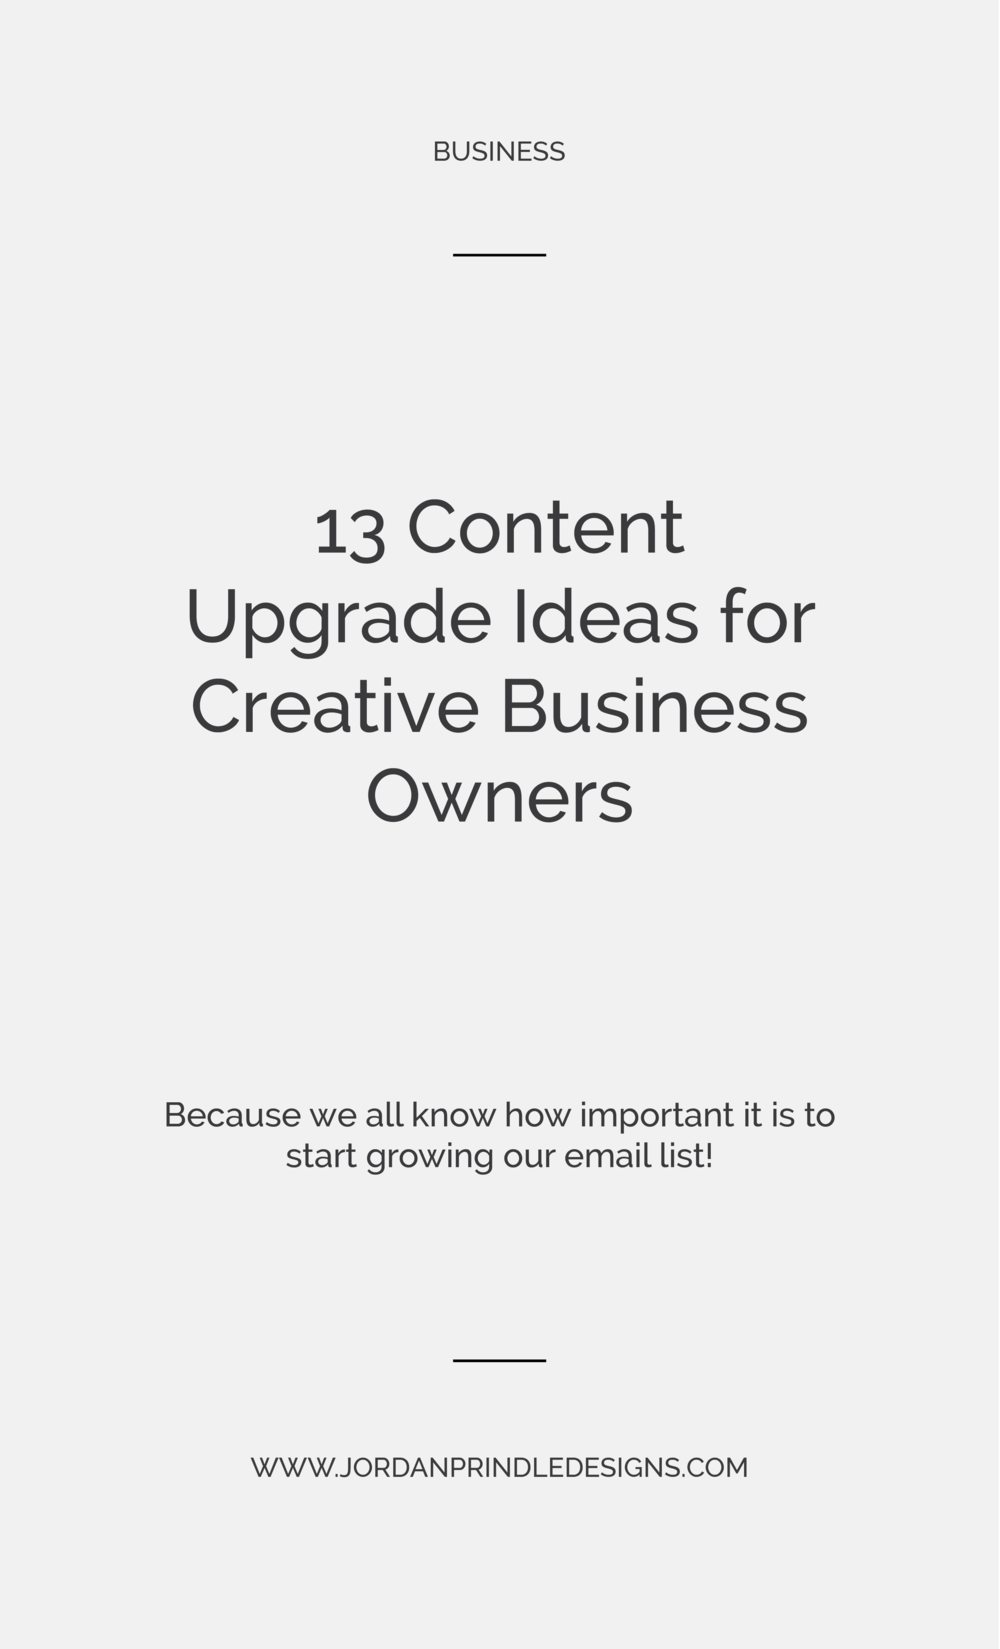 13 Content Upgrade Ideas for Creative Business Owners | If you are building your email list or launching a new business, this post is for you. Read it at www.jordanprindledesigns.com #smallbusiness #branddesign #businesstips